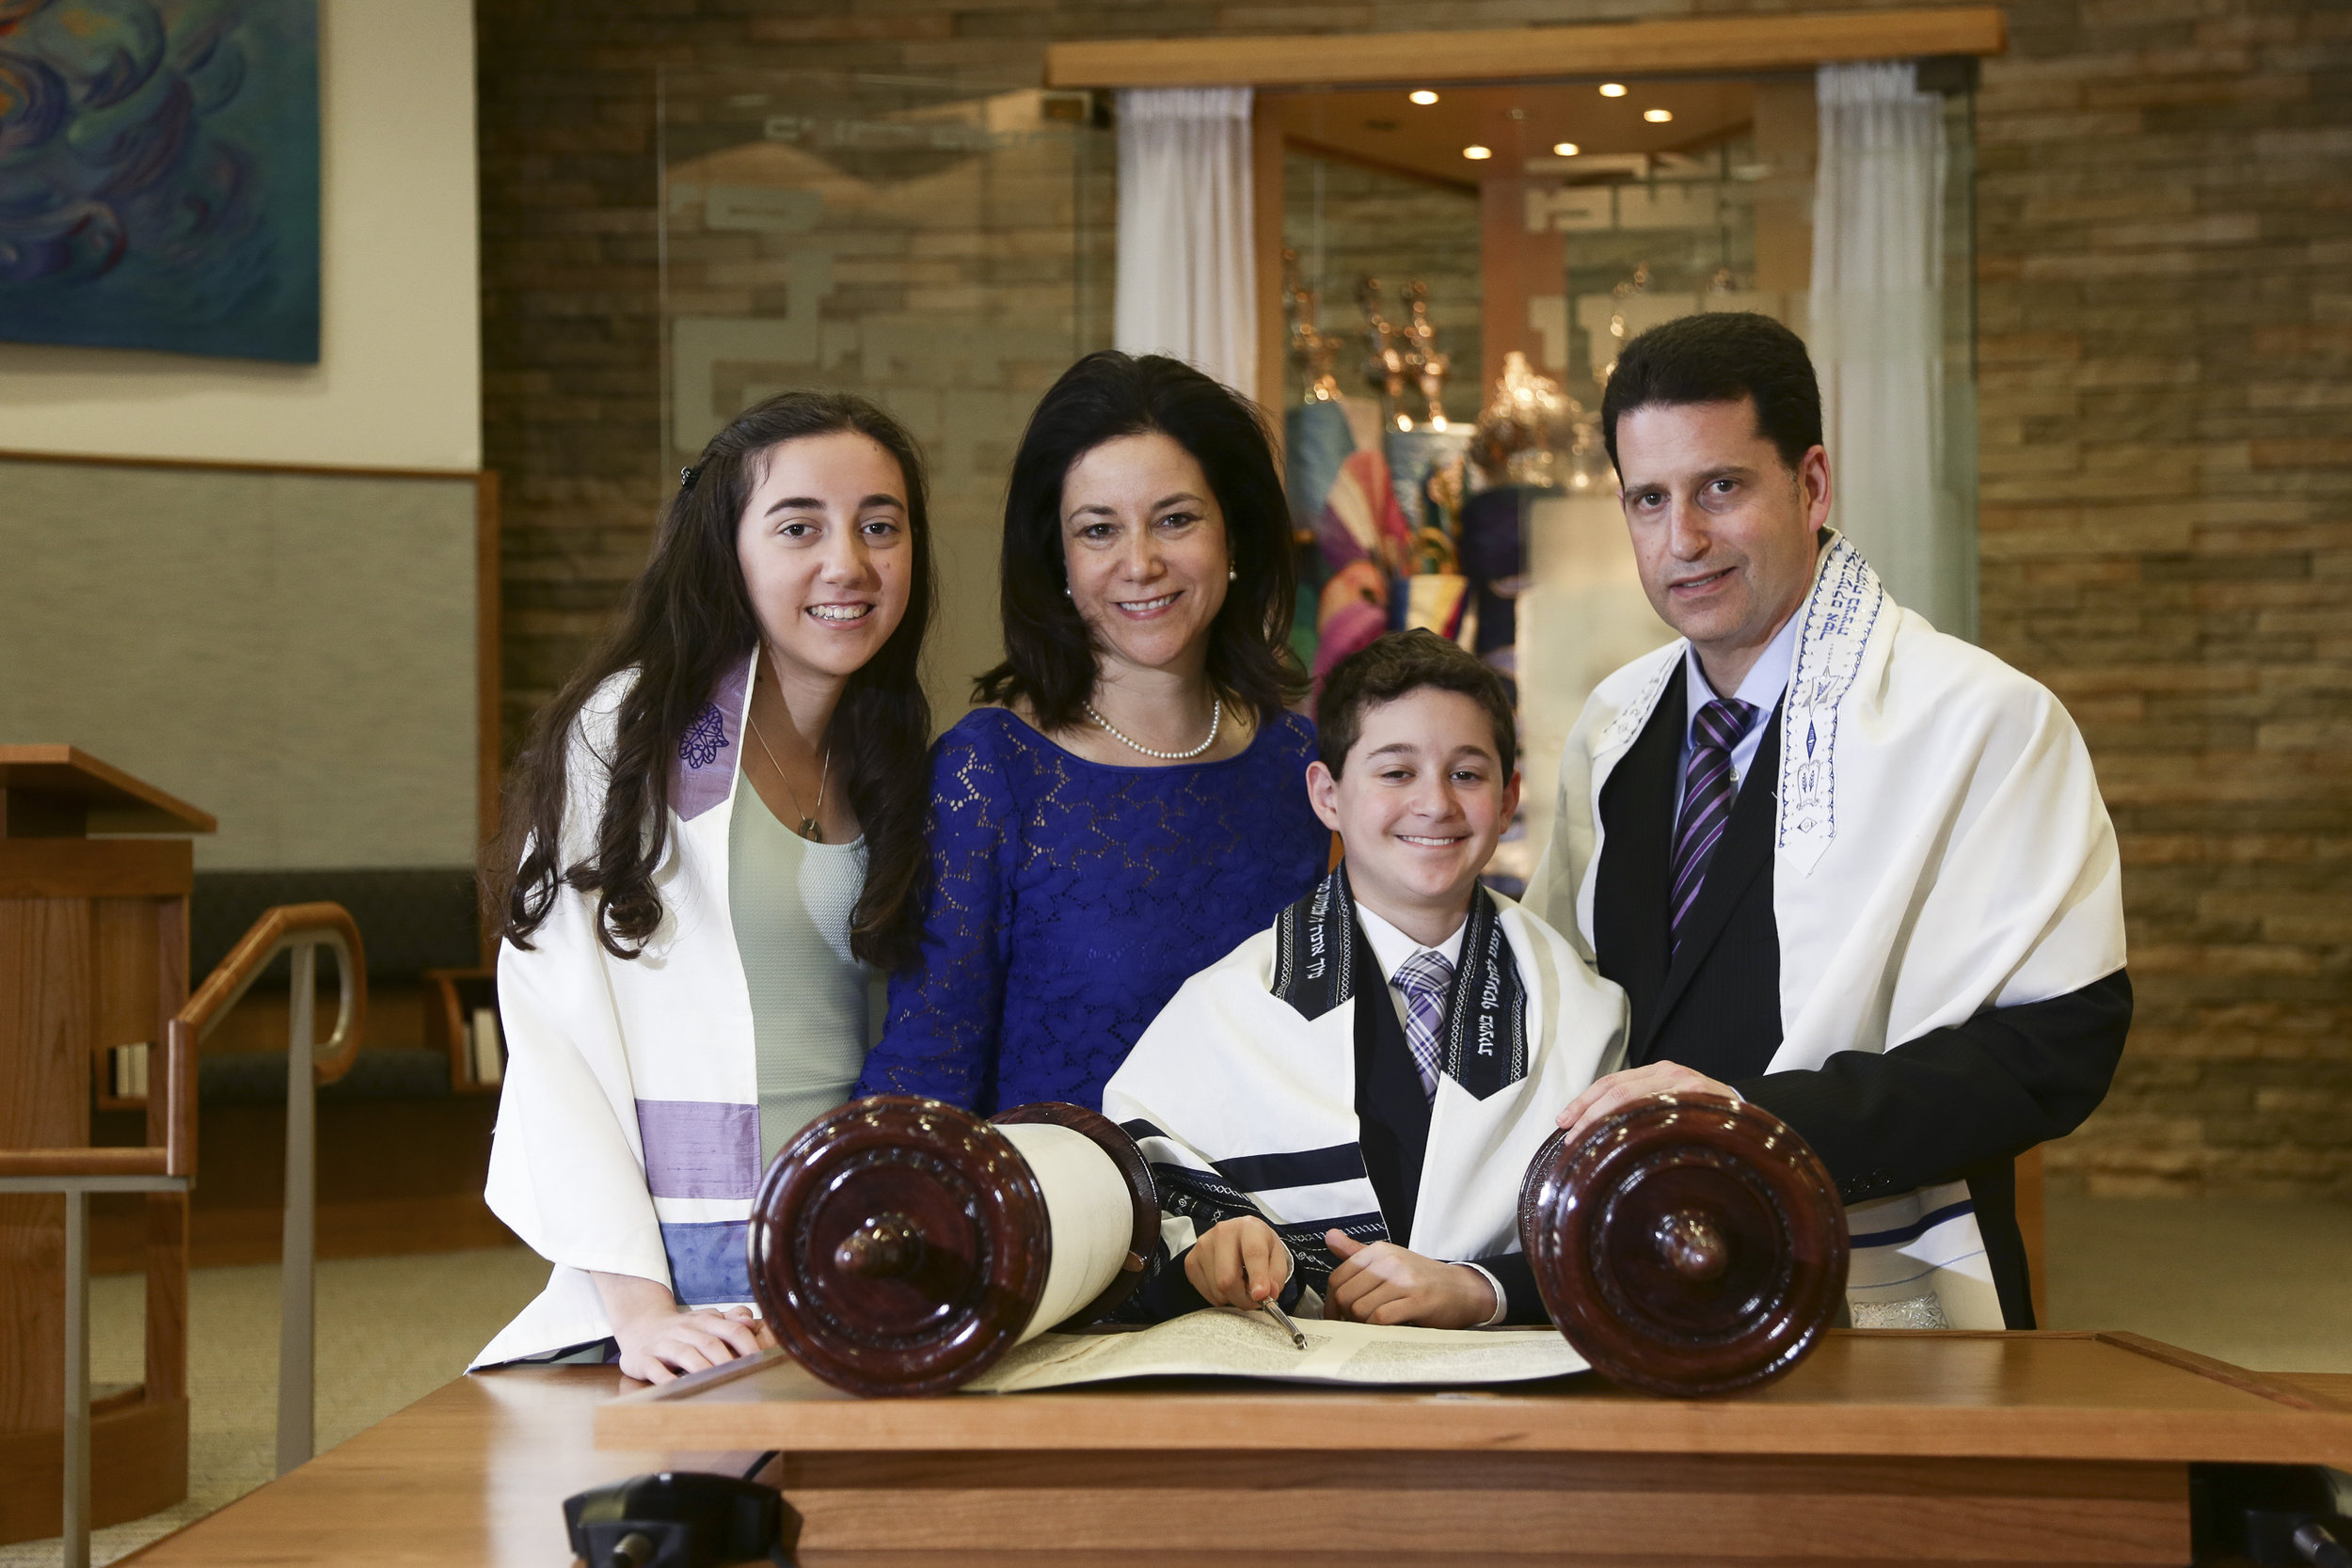 Bar and Bat Mitvahs - Congratulations on your child being called to the Torah!While getting timeless portraits with your family, we also work with your child so they are at their most comfortable in front of the camera.